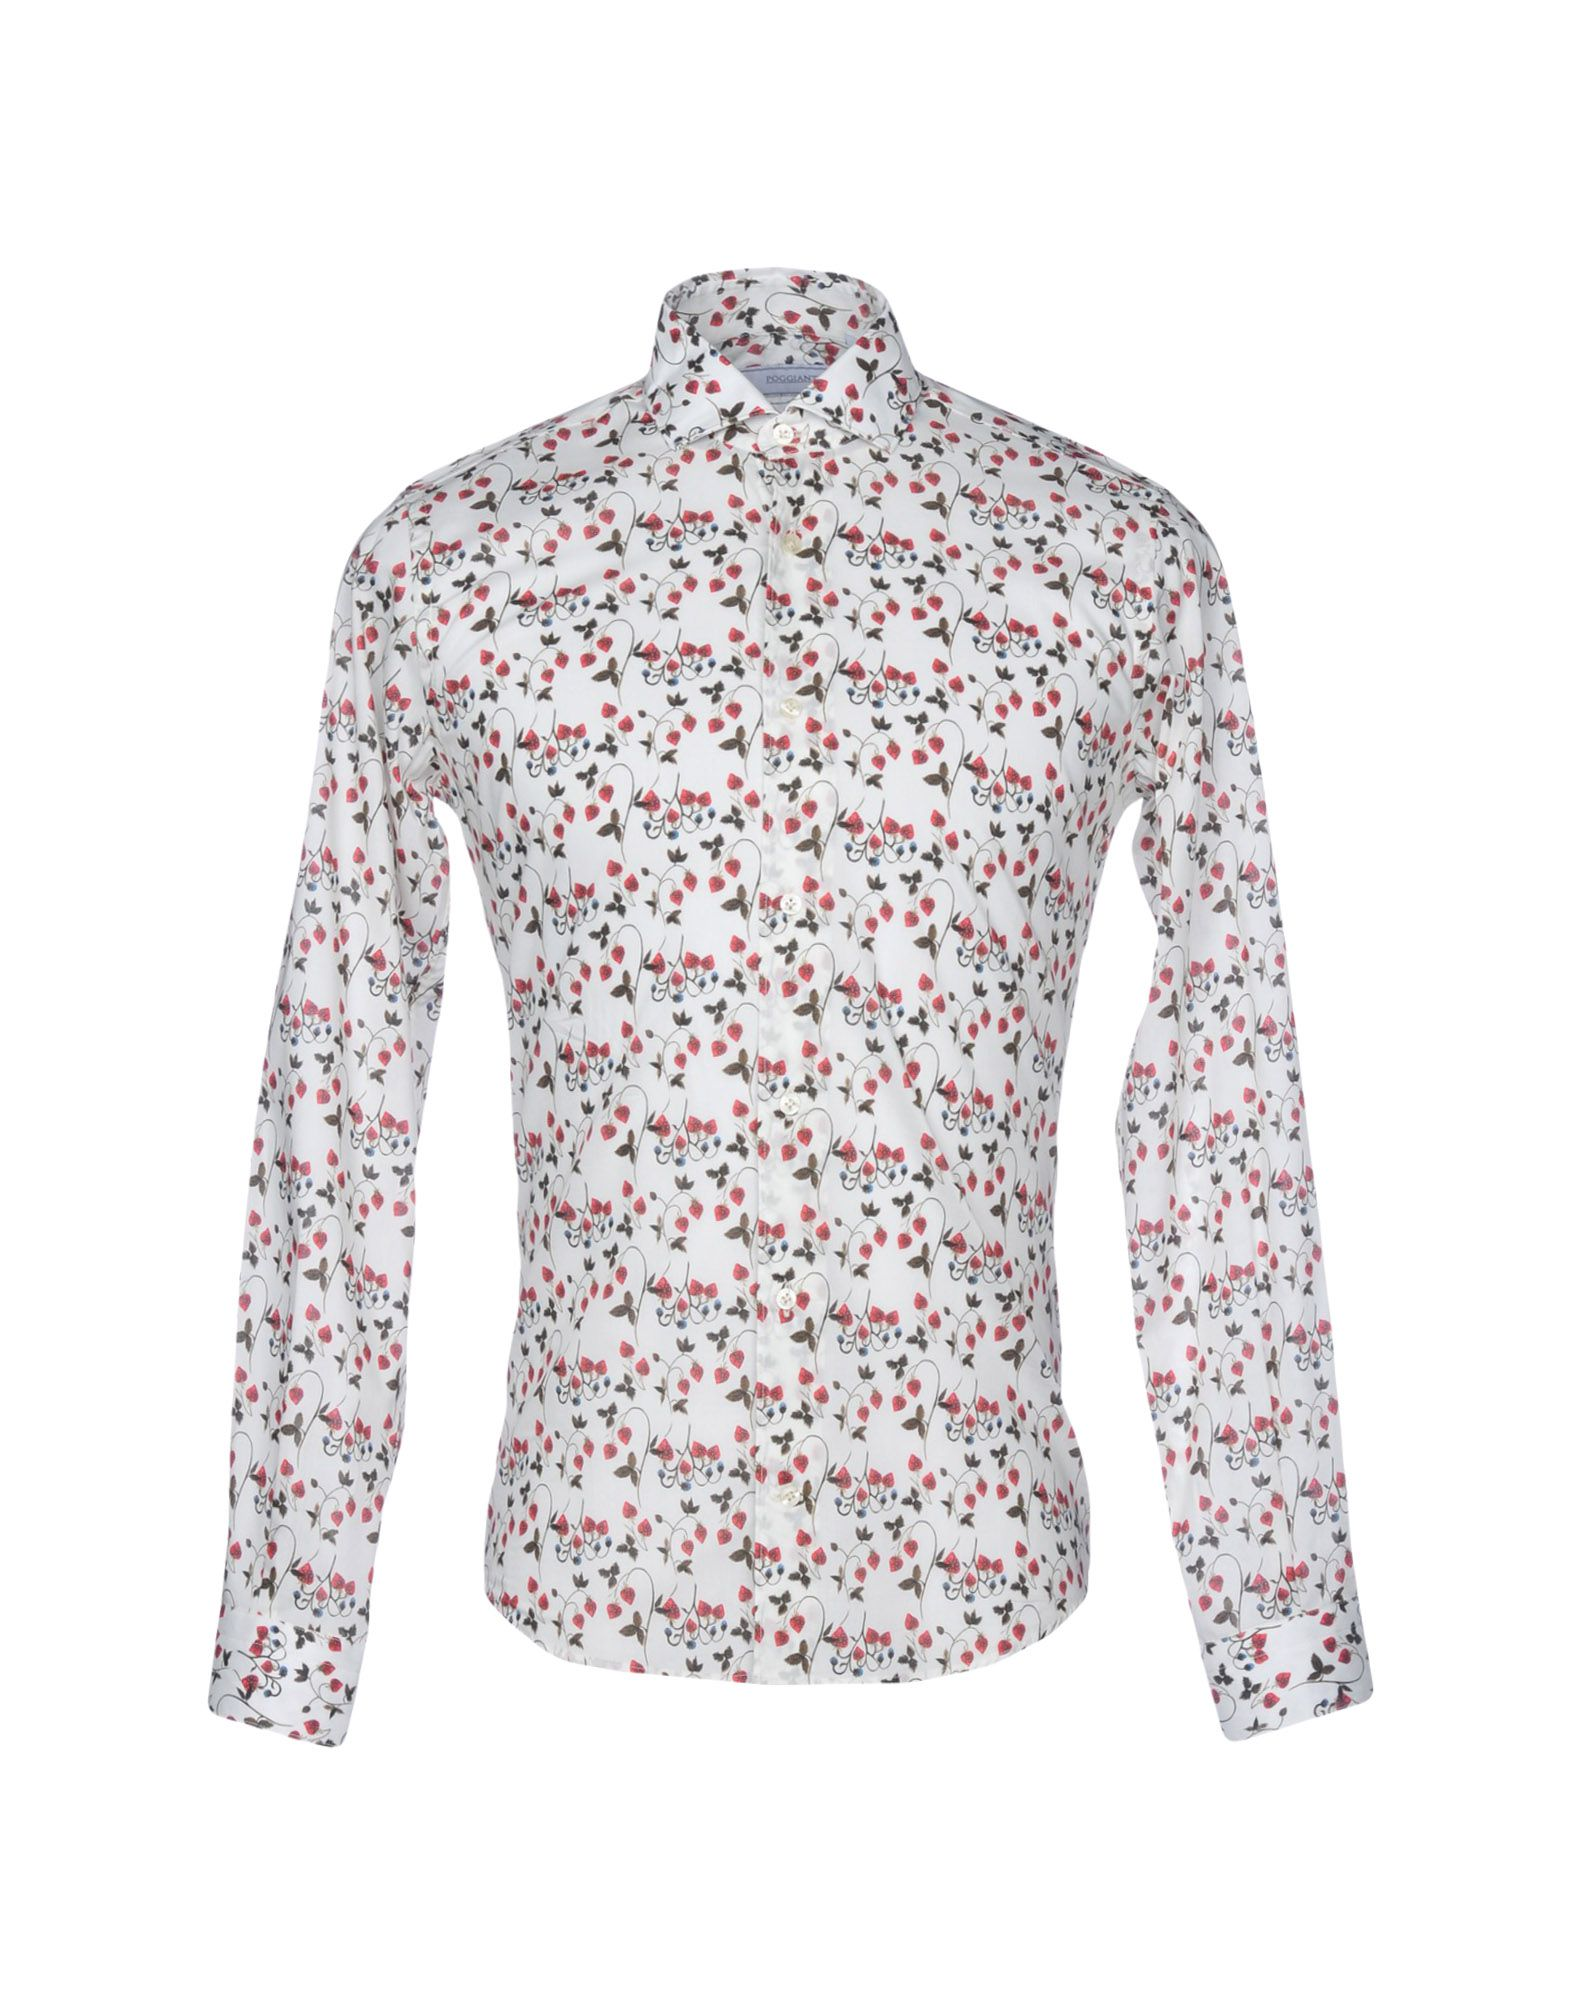 POGGIANTI Patterned Shirt in Ivory